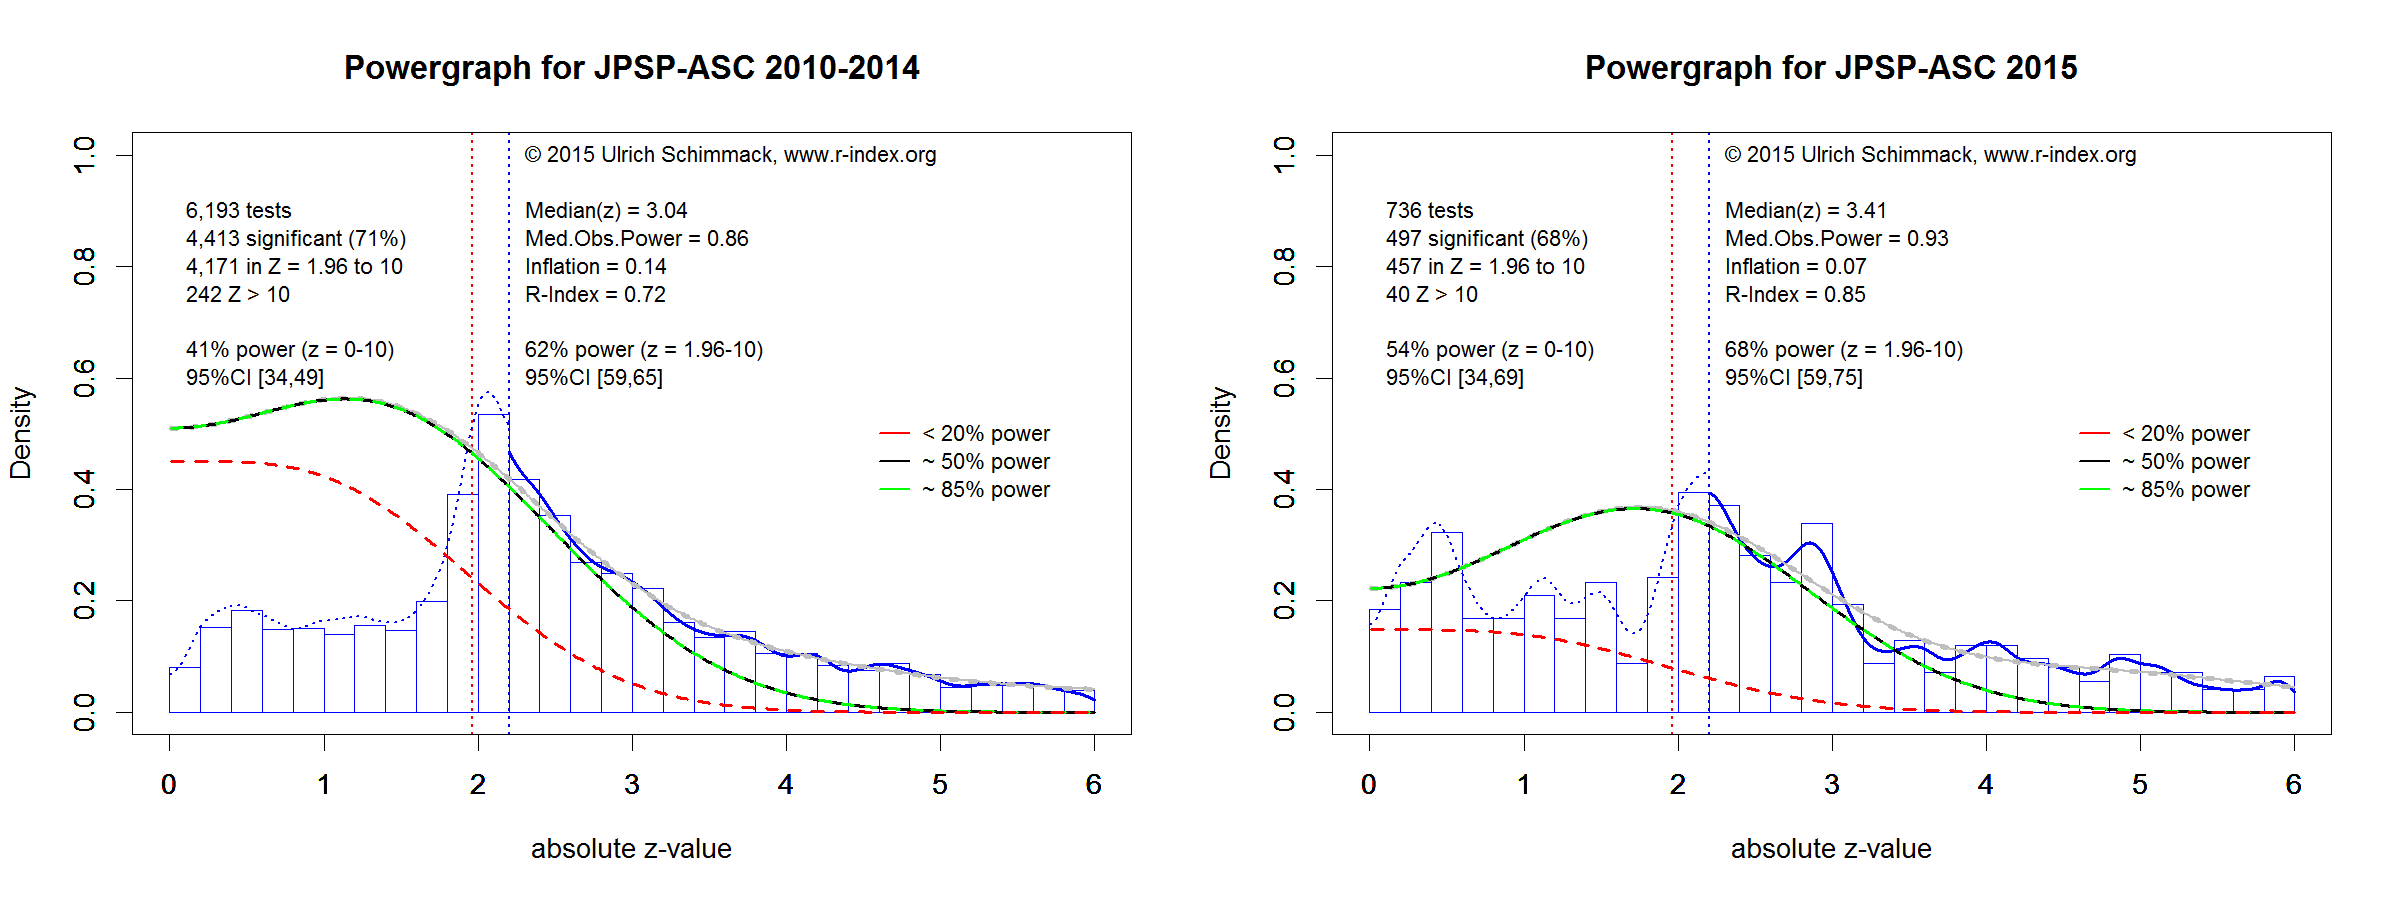 Powergraphs for JPSP-ASC3.g